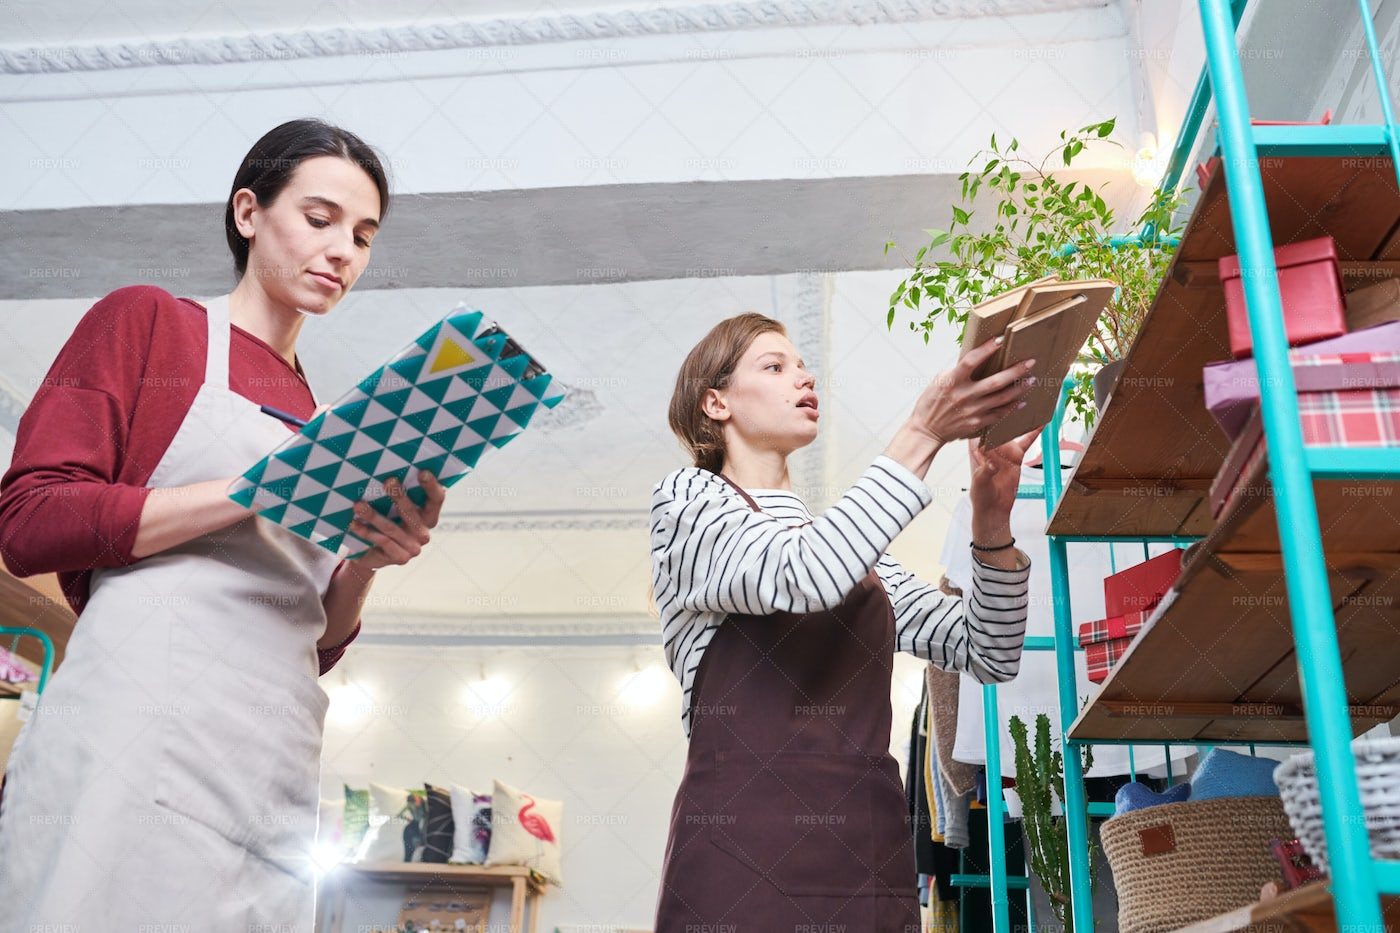 Women Decorating Store For...: Stock Photos